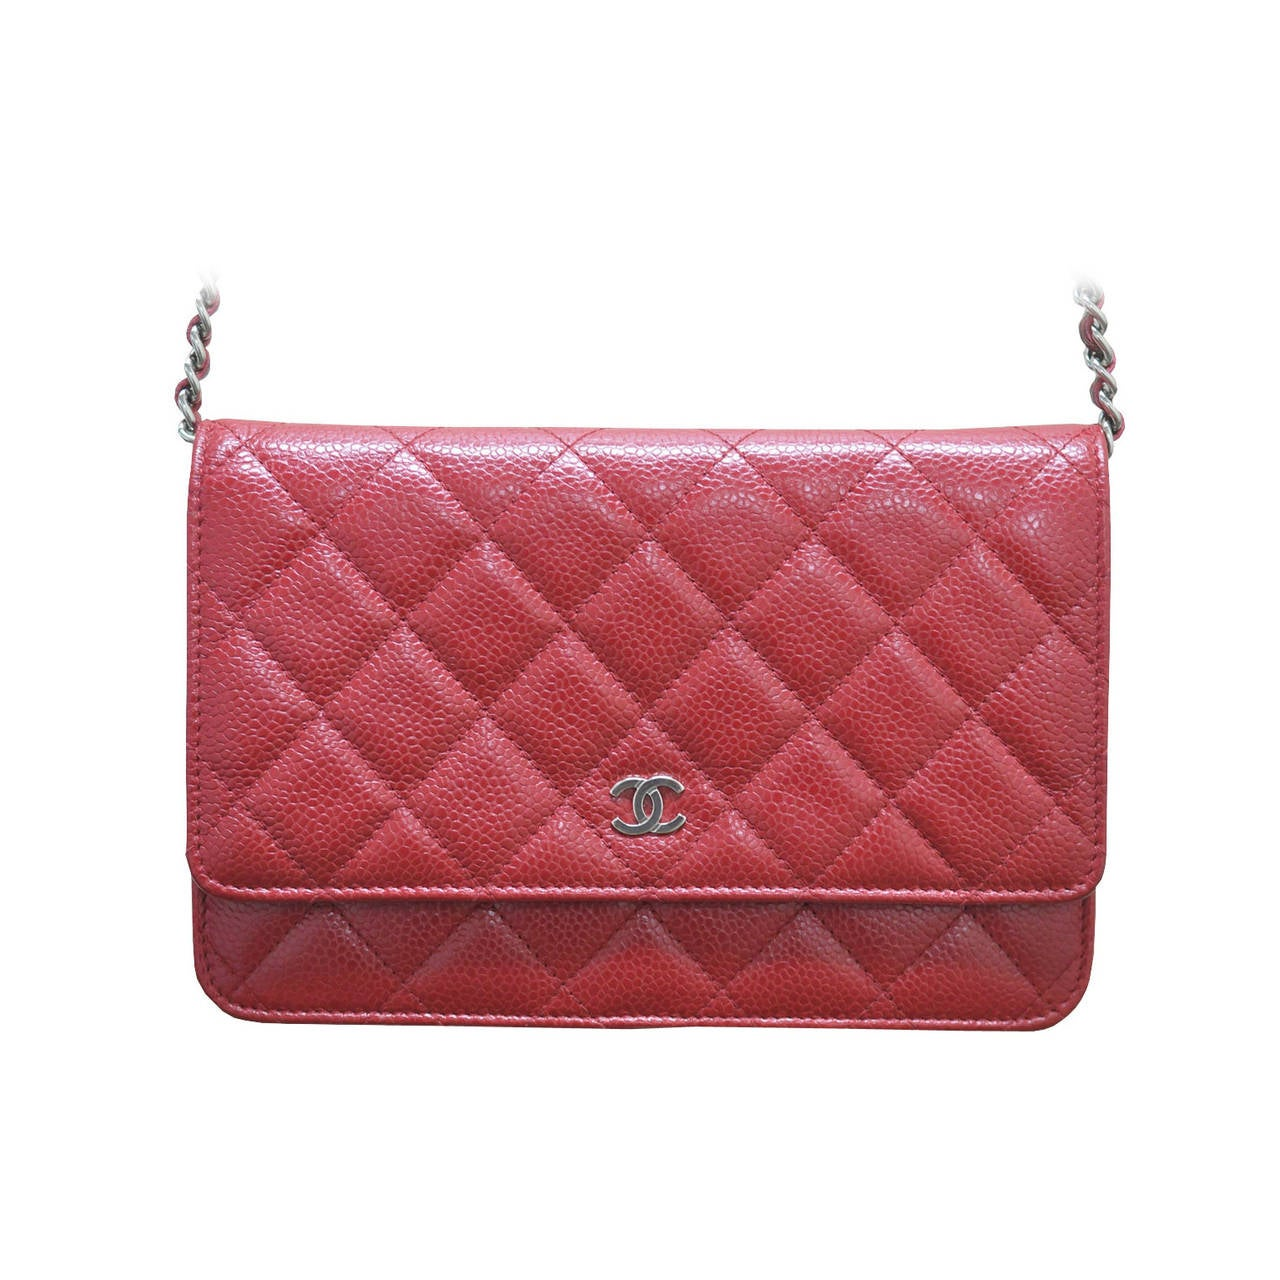 9f6994cb619f Chanel Red Caviar Leather WOC Wallet on Chain Silver Hardware Handbag For  Sale